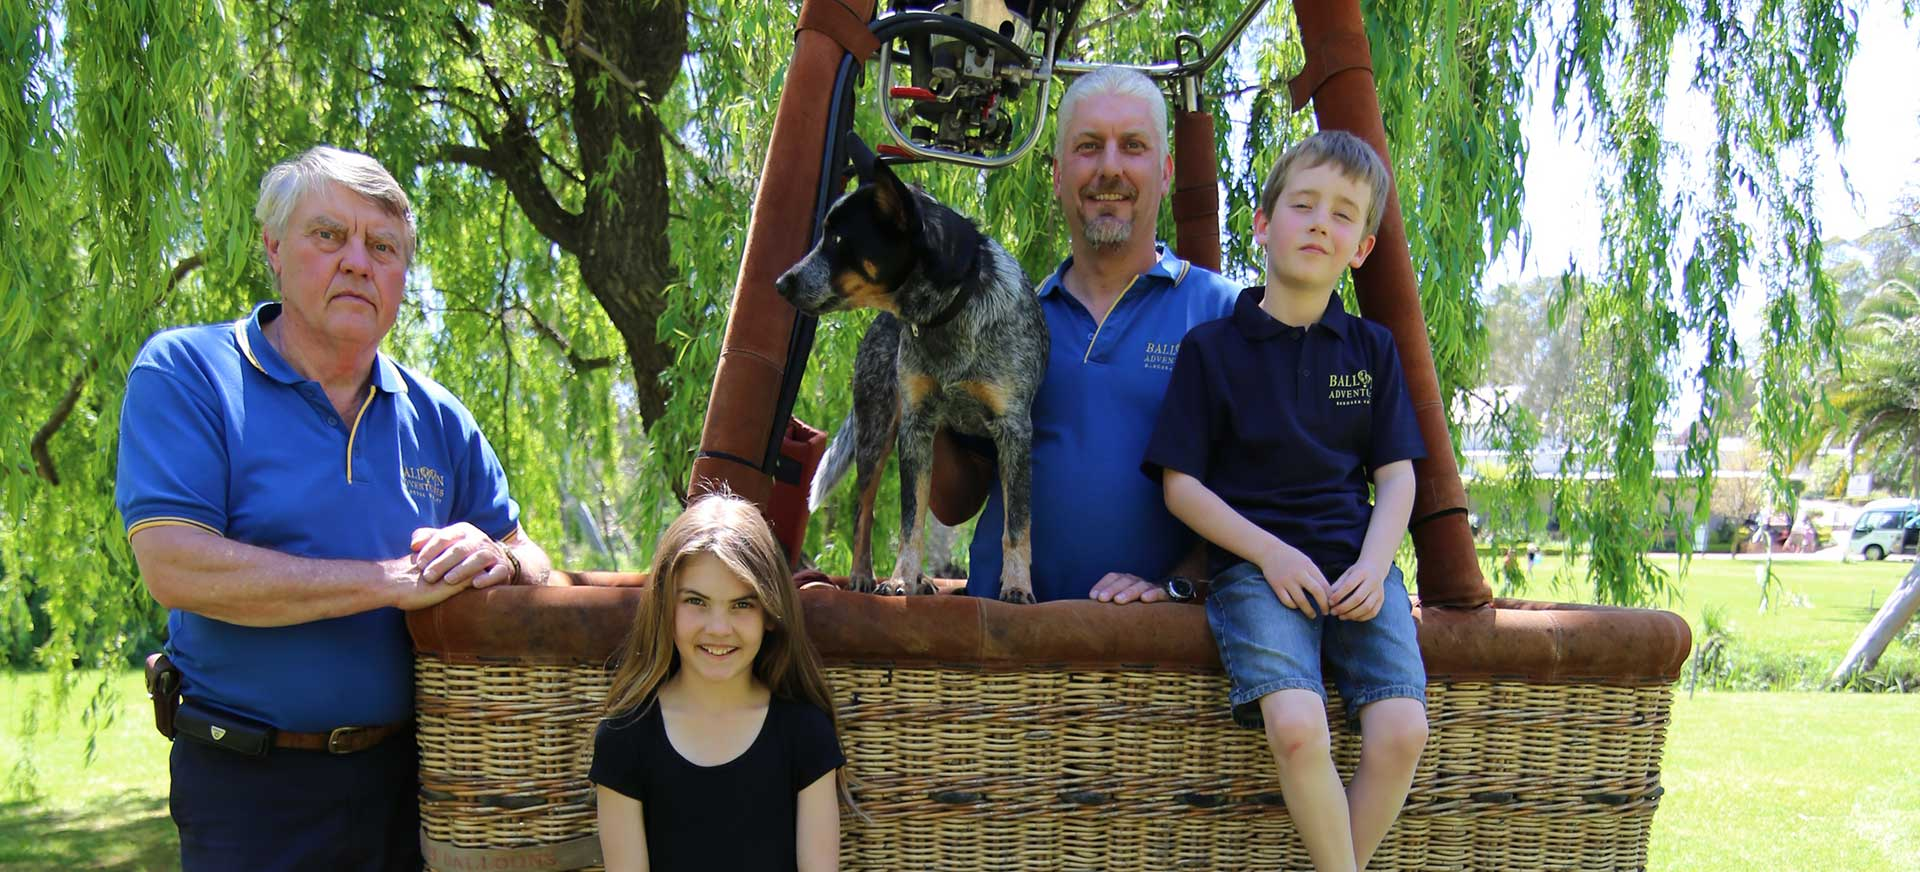 balloon-adventures-hot-air-balloon-flights-chief-pilot-and-dog-gibson-and-family10